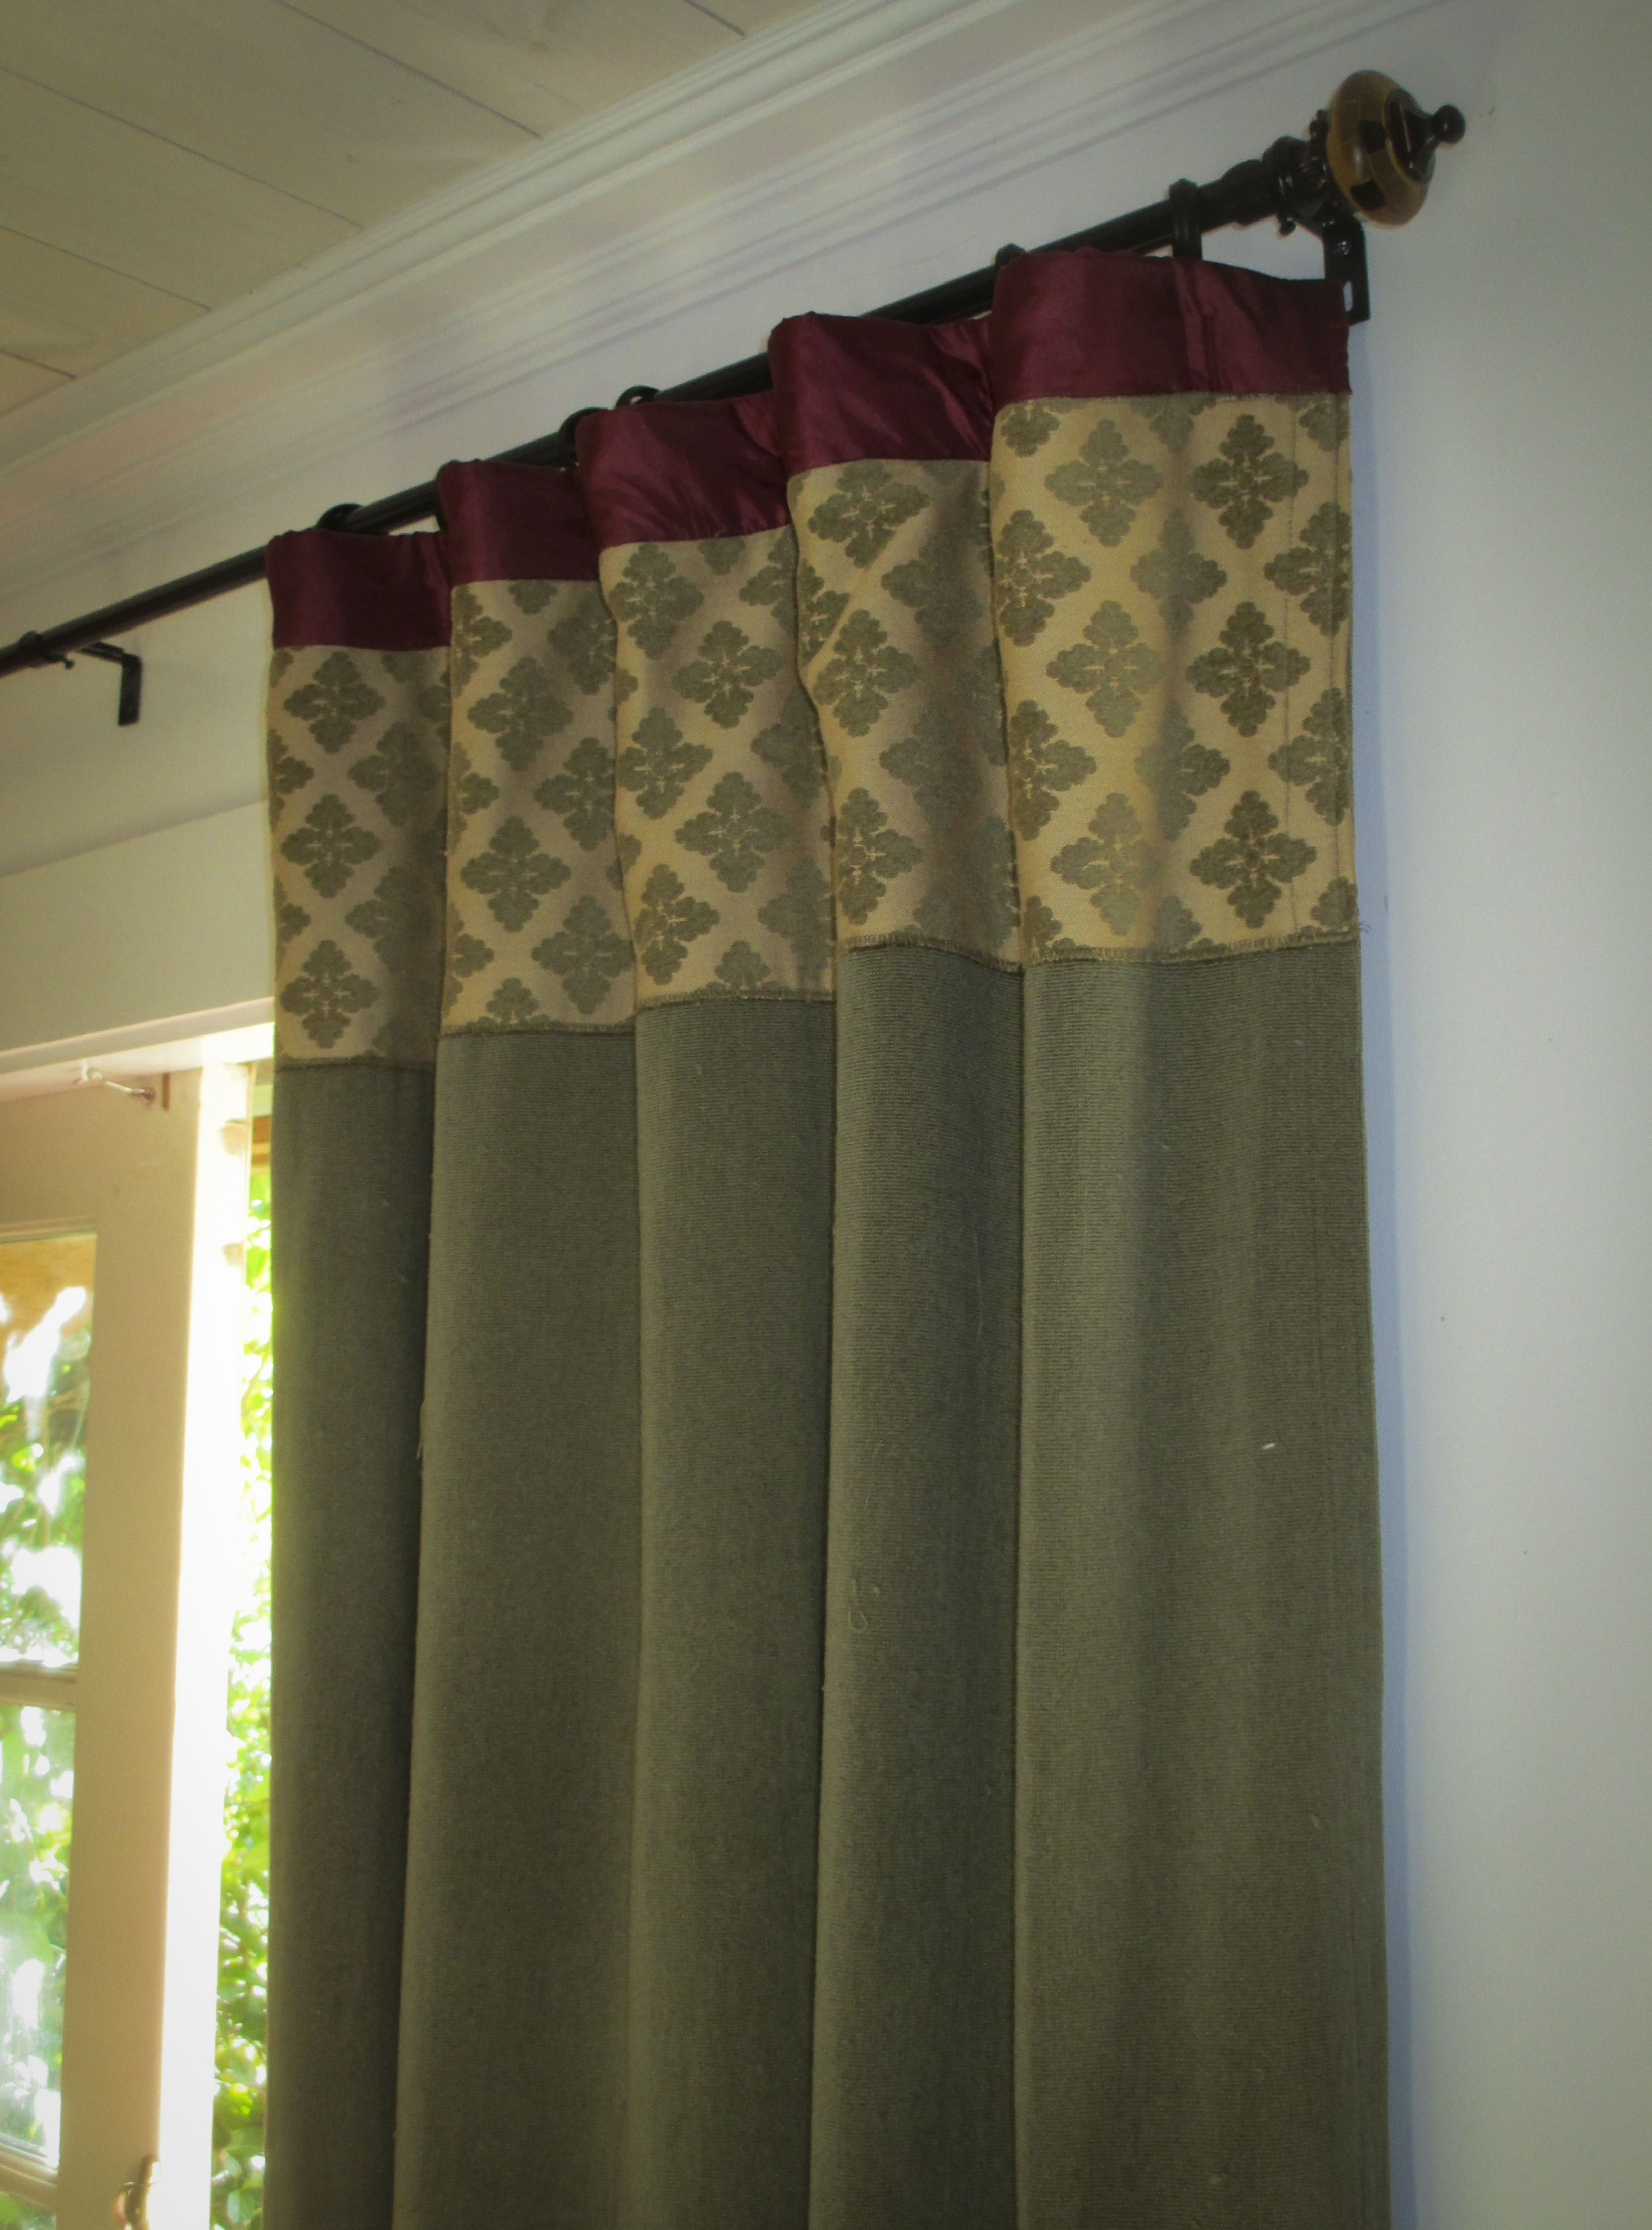 Drapes Awesome Banding And Contrast Ideas Different Color Scheme, But Wonderful Detail